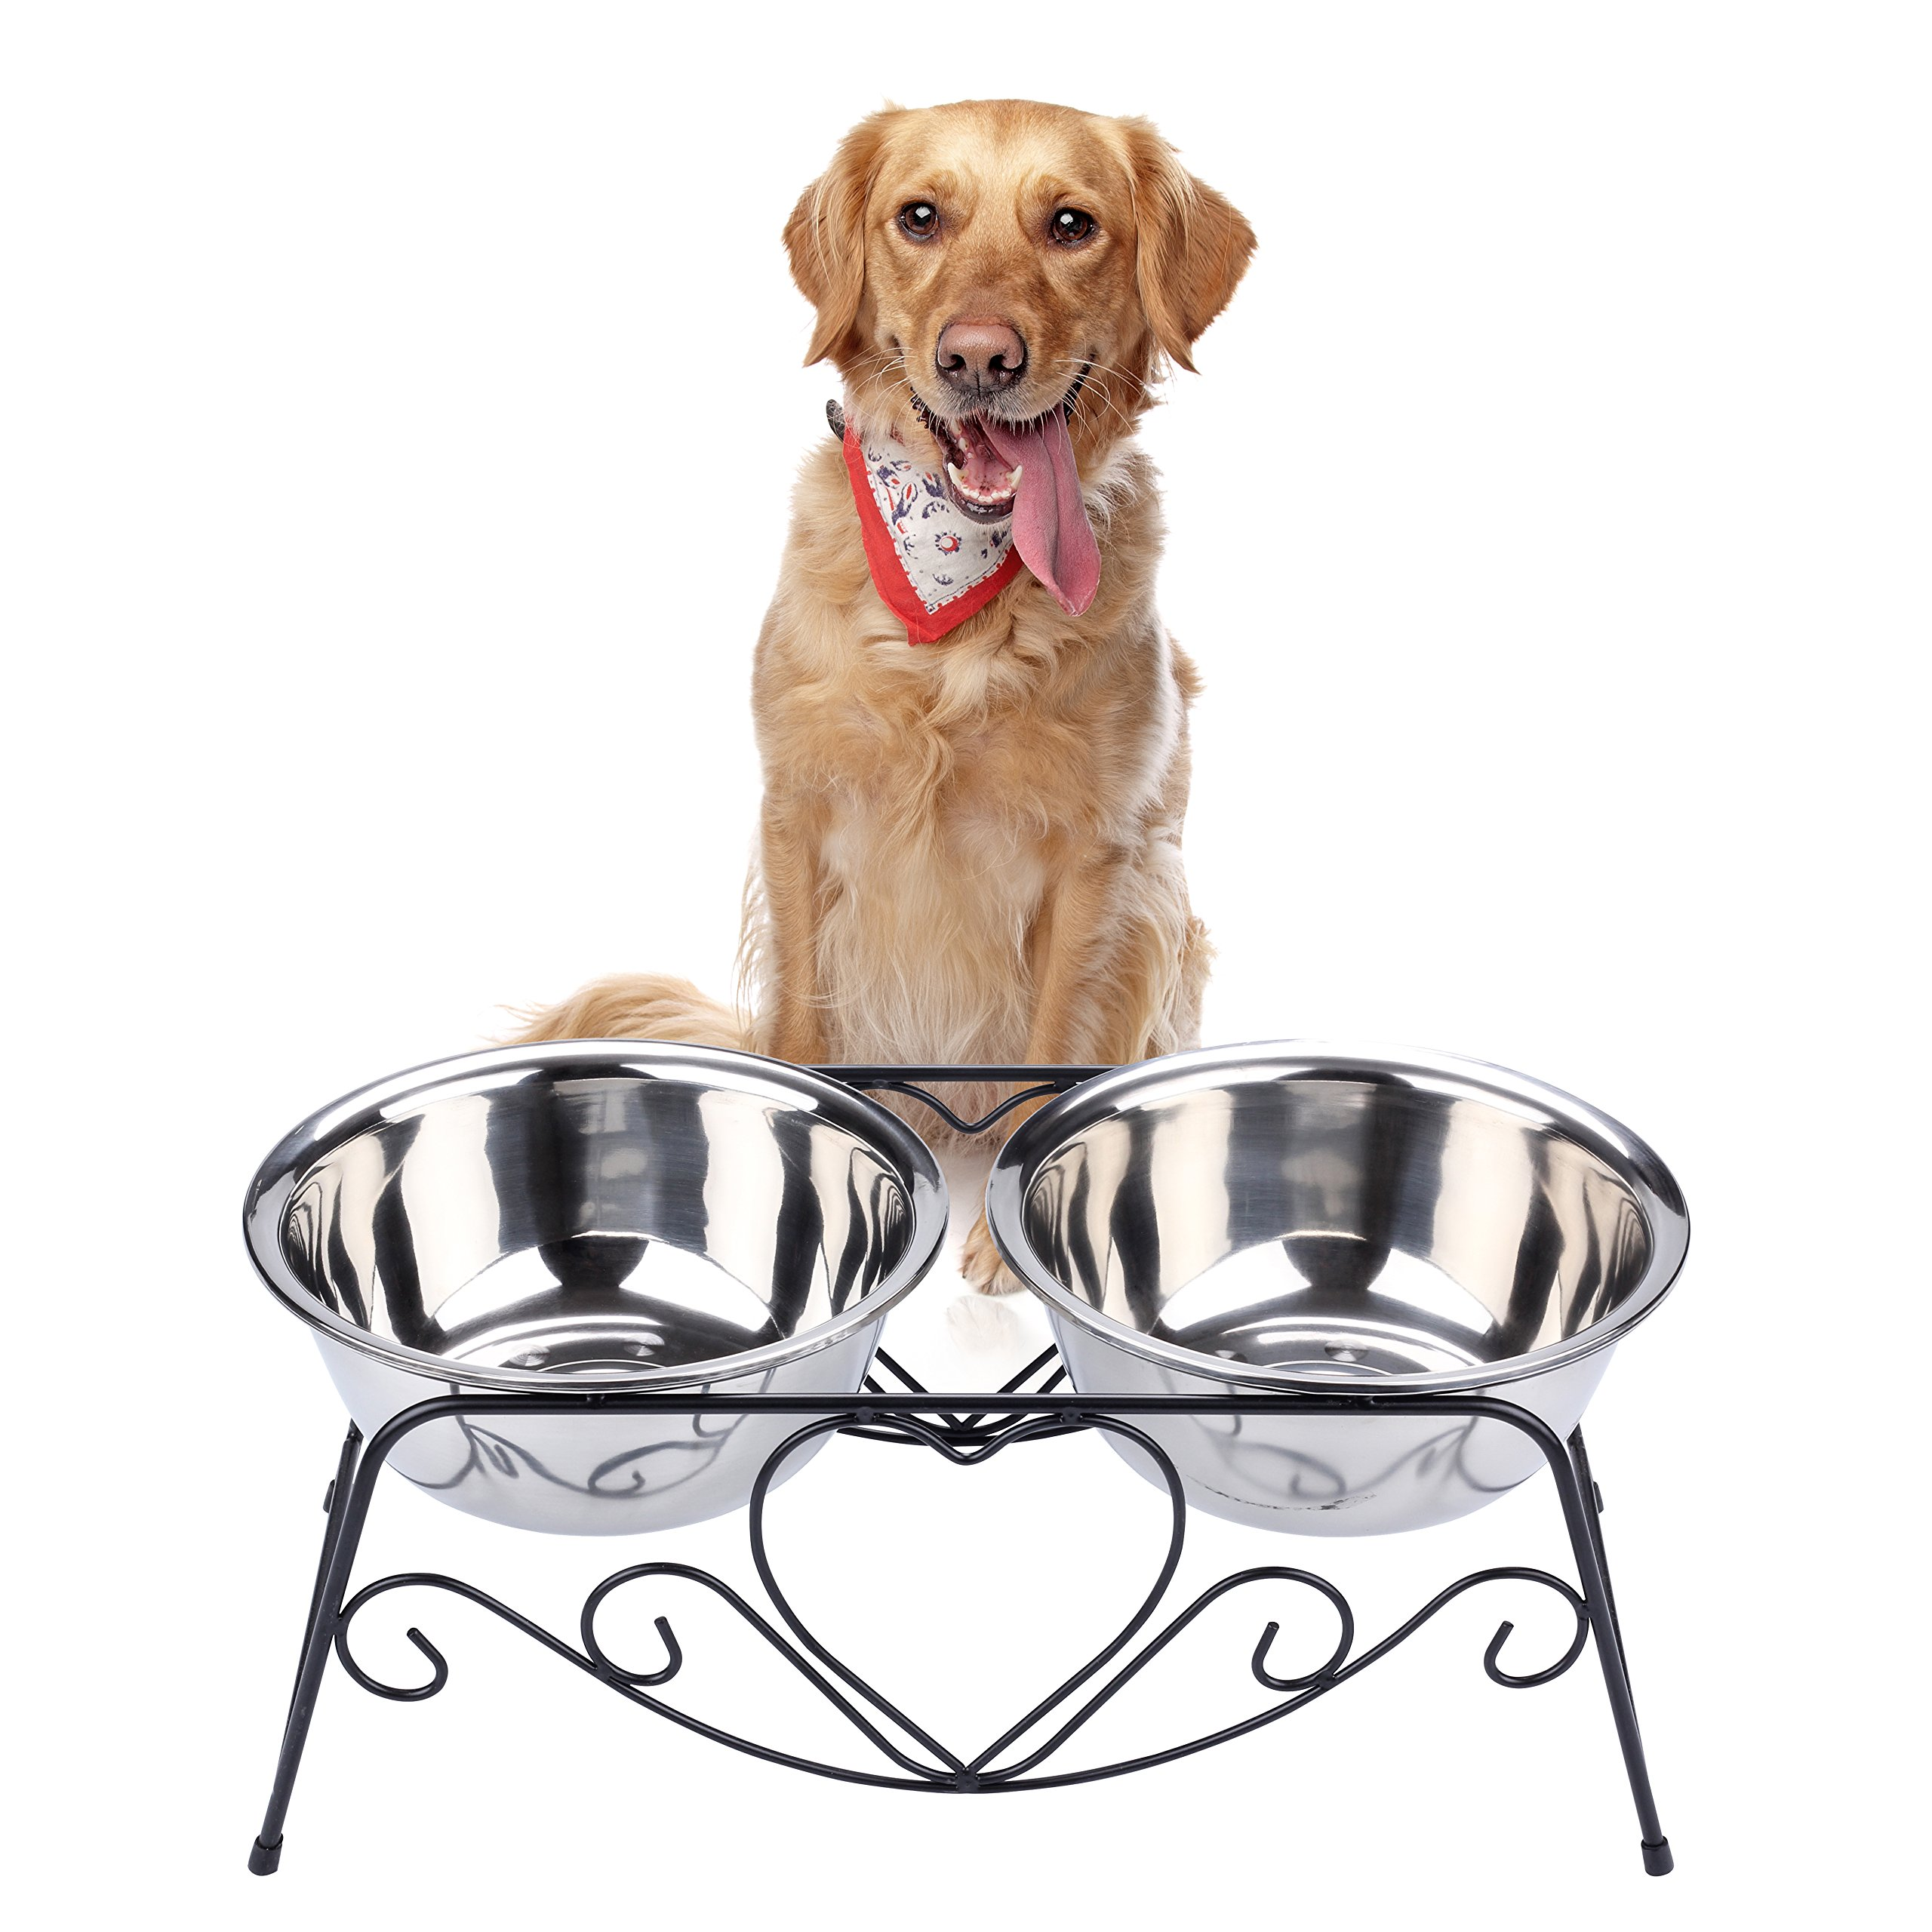 VIVIKO Pet Feeder for Dog Cat, Stainless Steel Food and Water Bowls with Iron Stand (Large) by VIVIKO